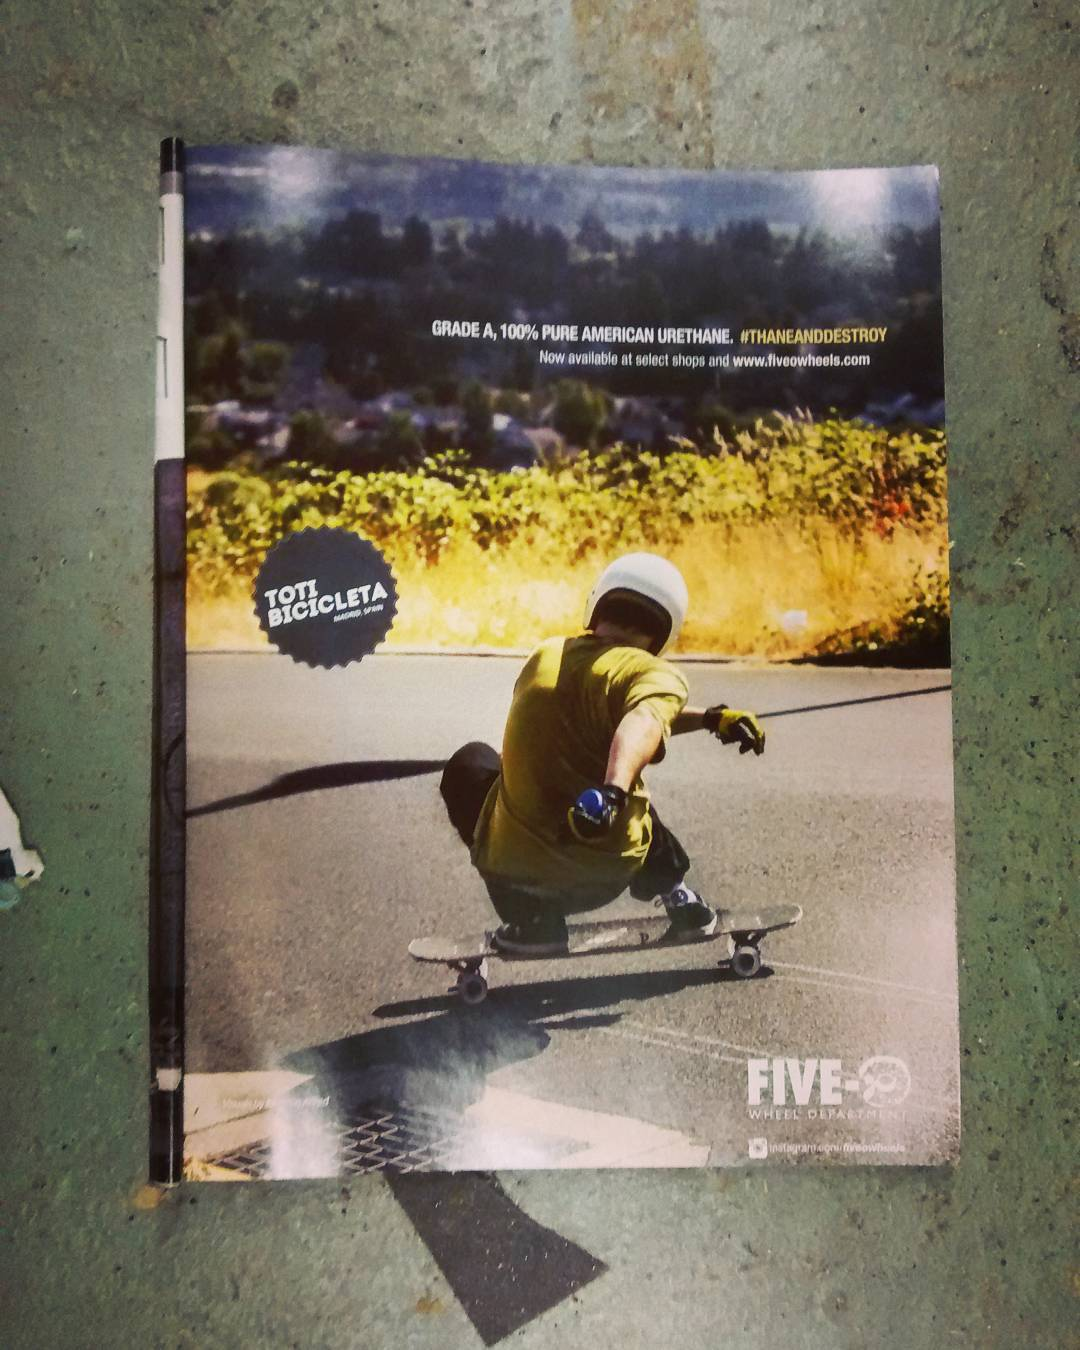 Found rider @totibicicleta doing a skid in a @fiveowheels ad from an old @skateslate magazine.